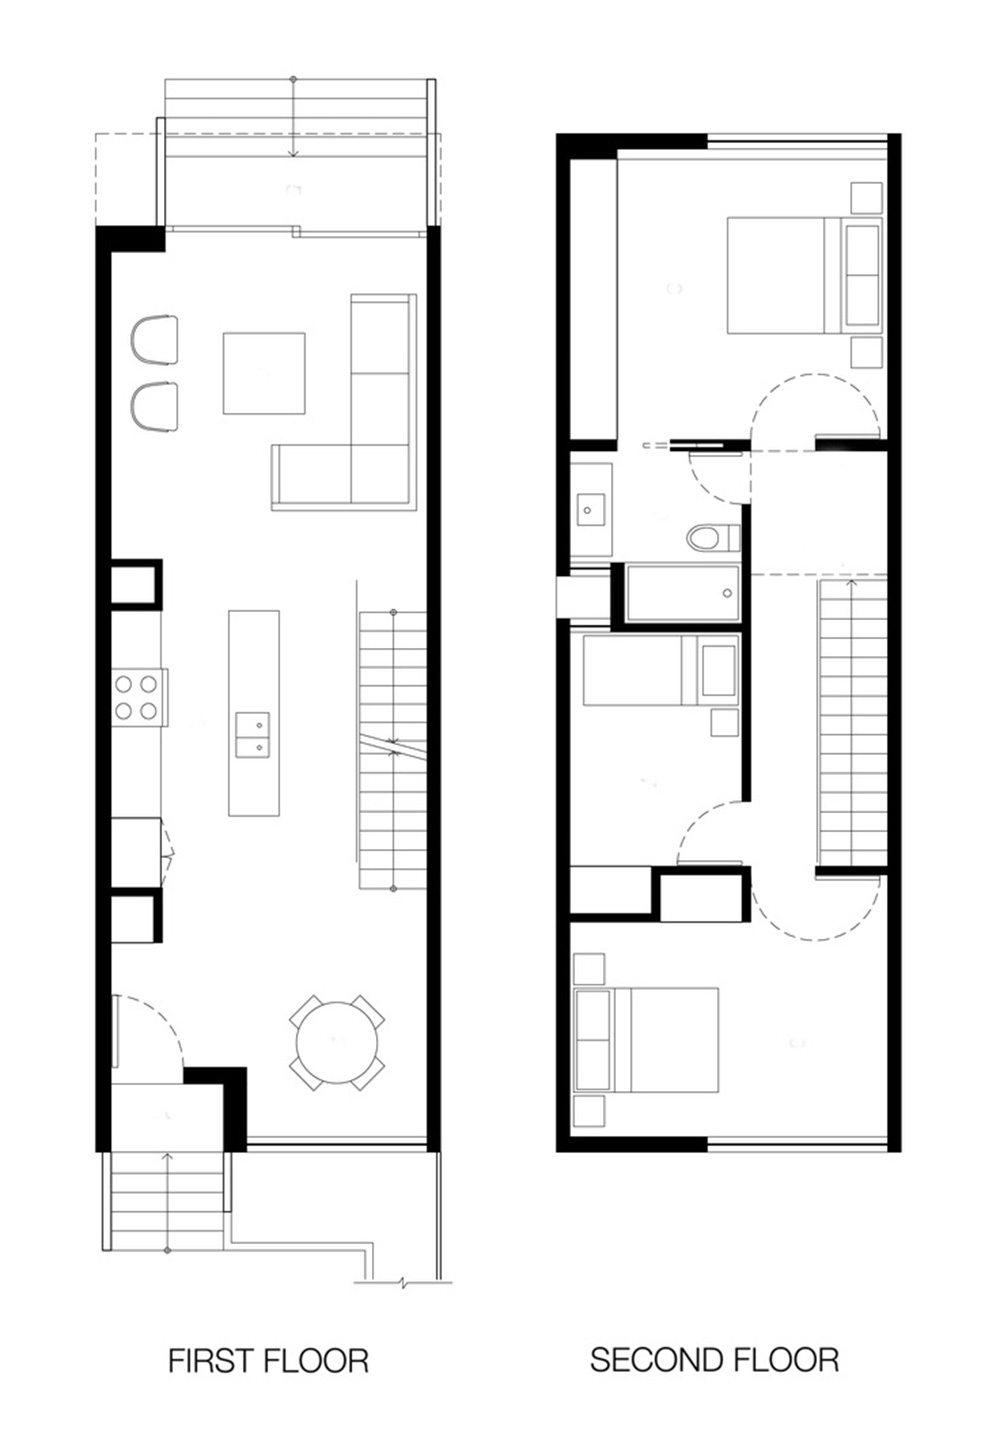 Characteristics of simple minimalist house plans for Minimalist house design plans